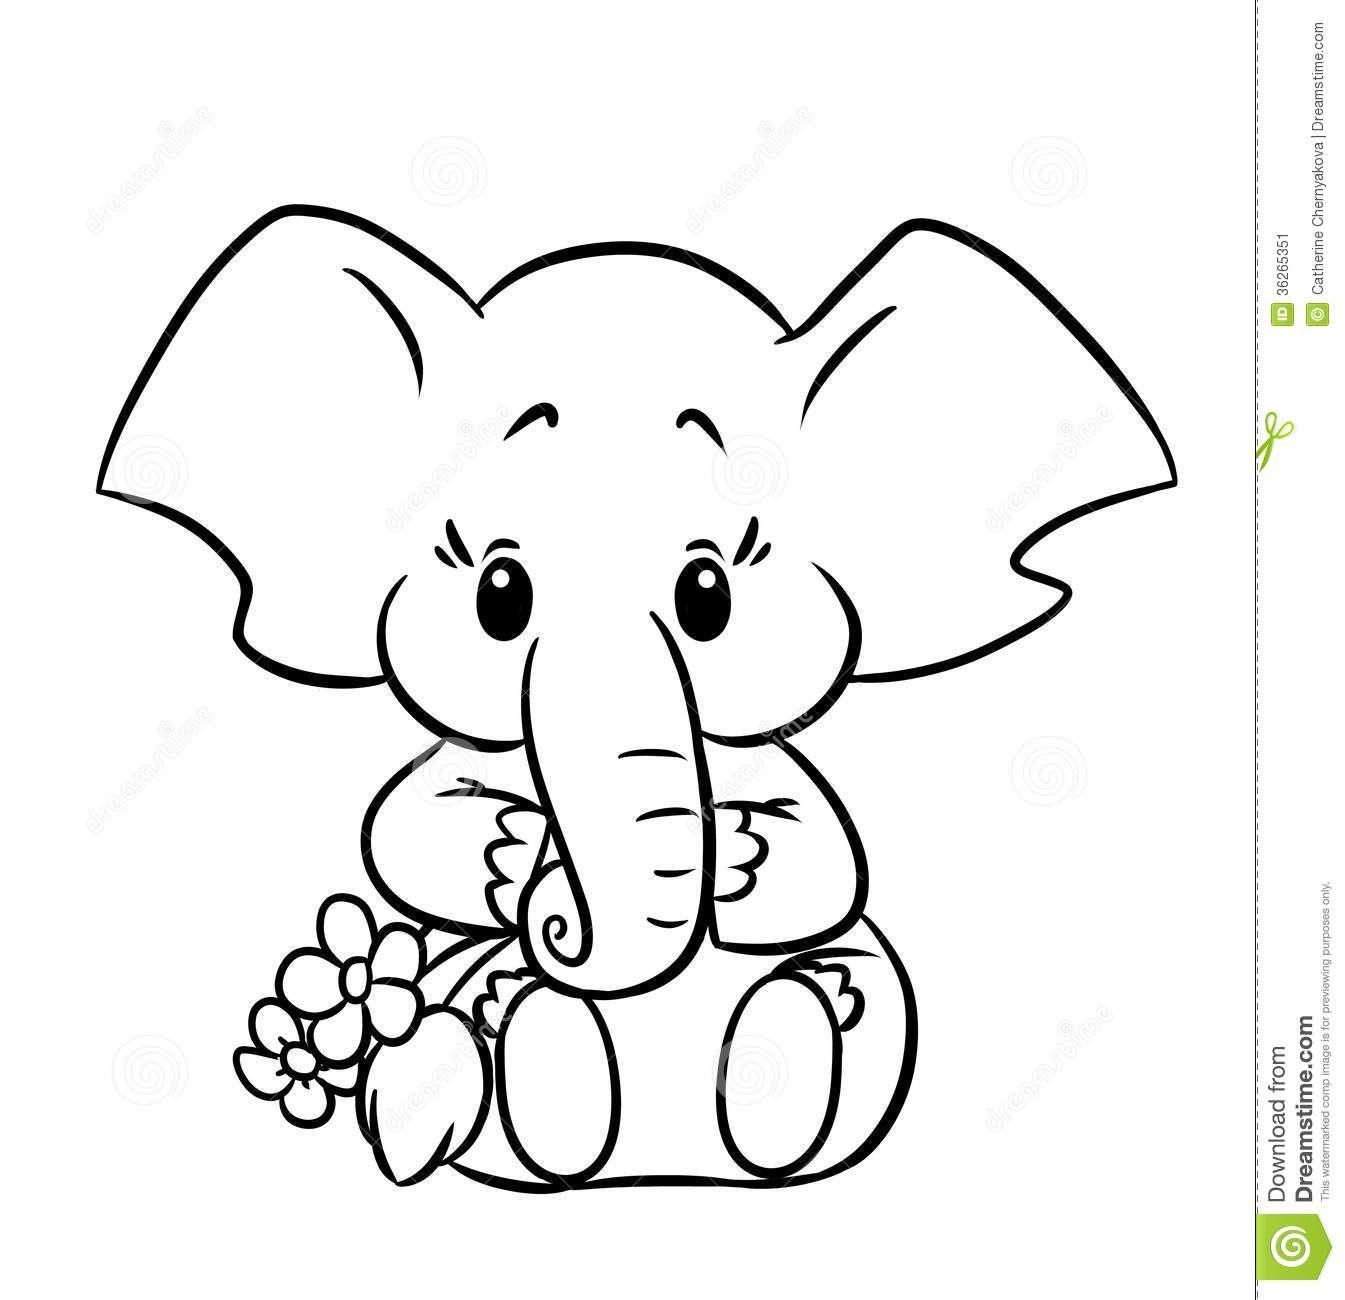 coloring elephant tusks pink elephant with balloons elephant coloring page preschool tusks pink coloring elephant